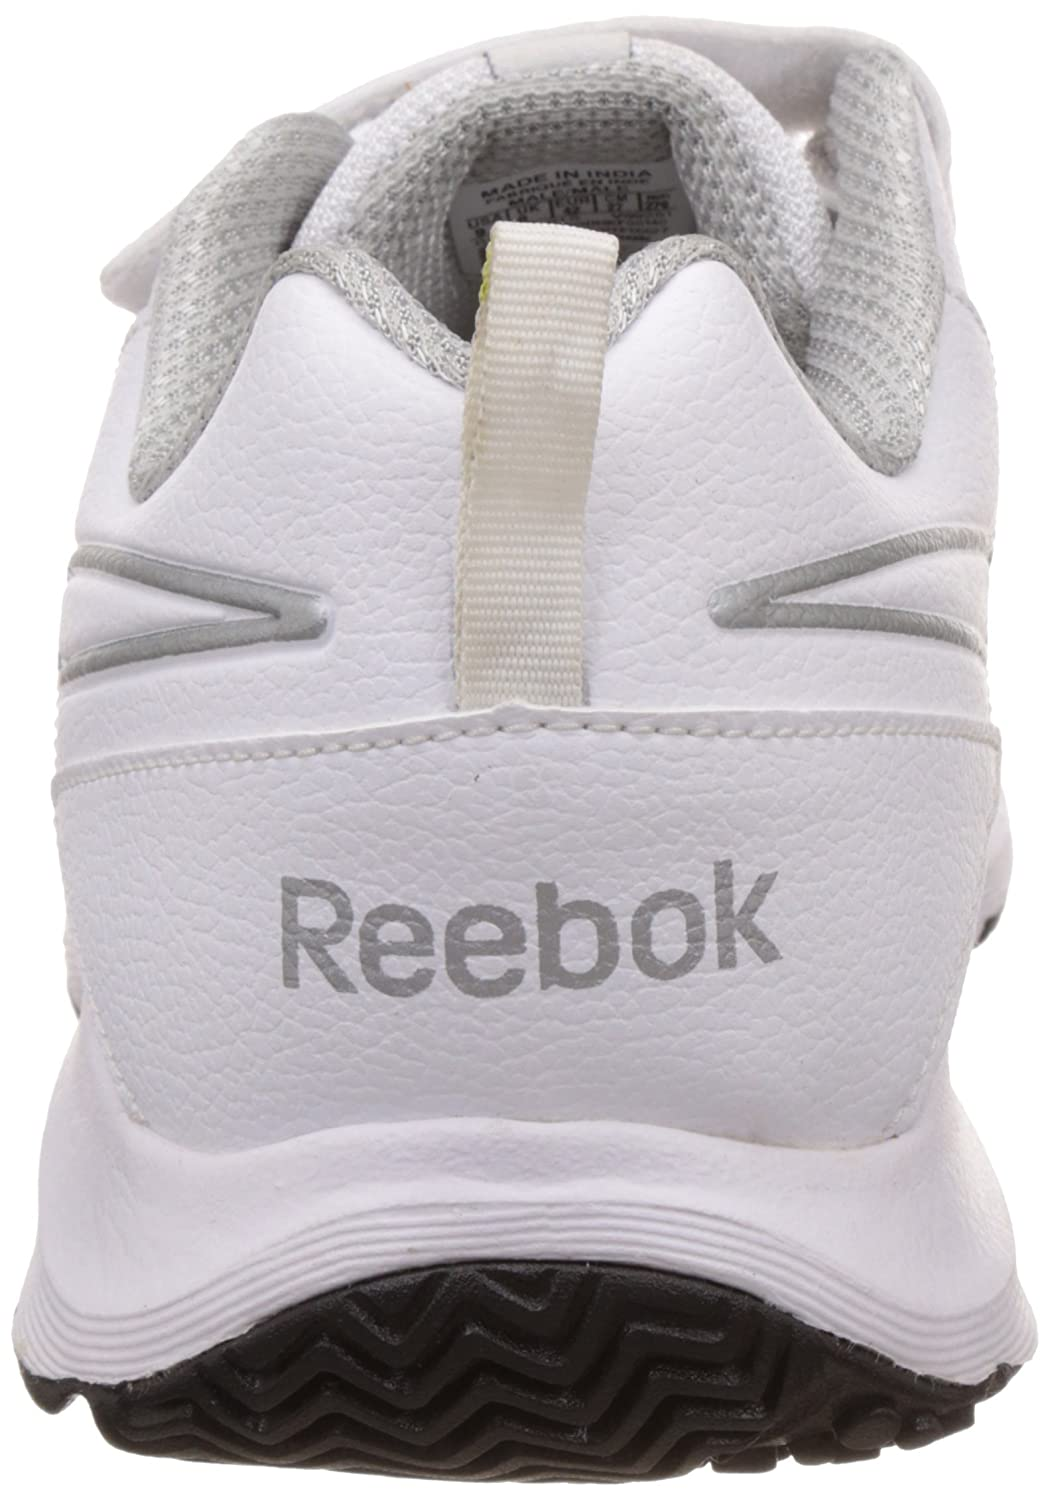 860efa5b59891f Reebok Men s All Day Walk Velcro Running Shoes  Buy Online at Low Prices in  India - Amazon.in